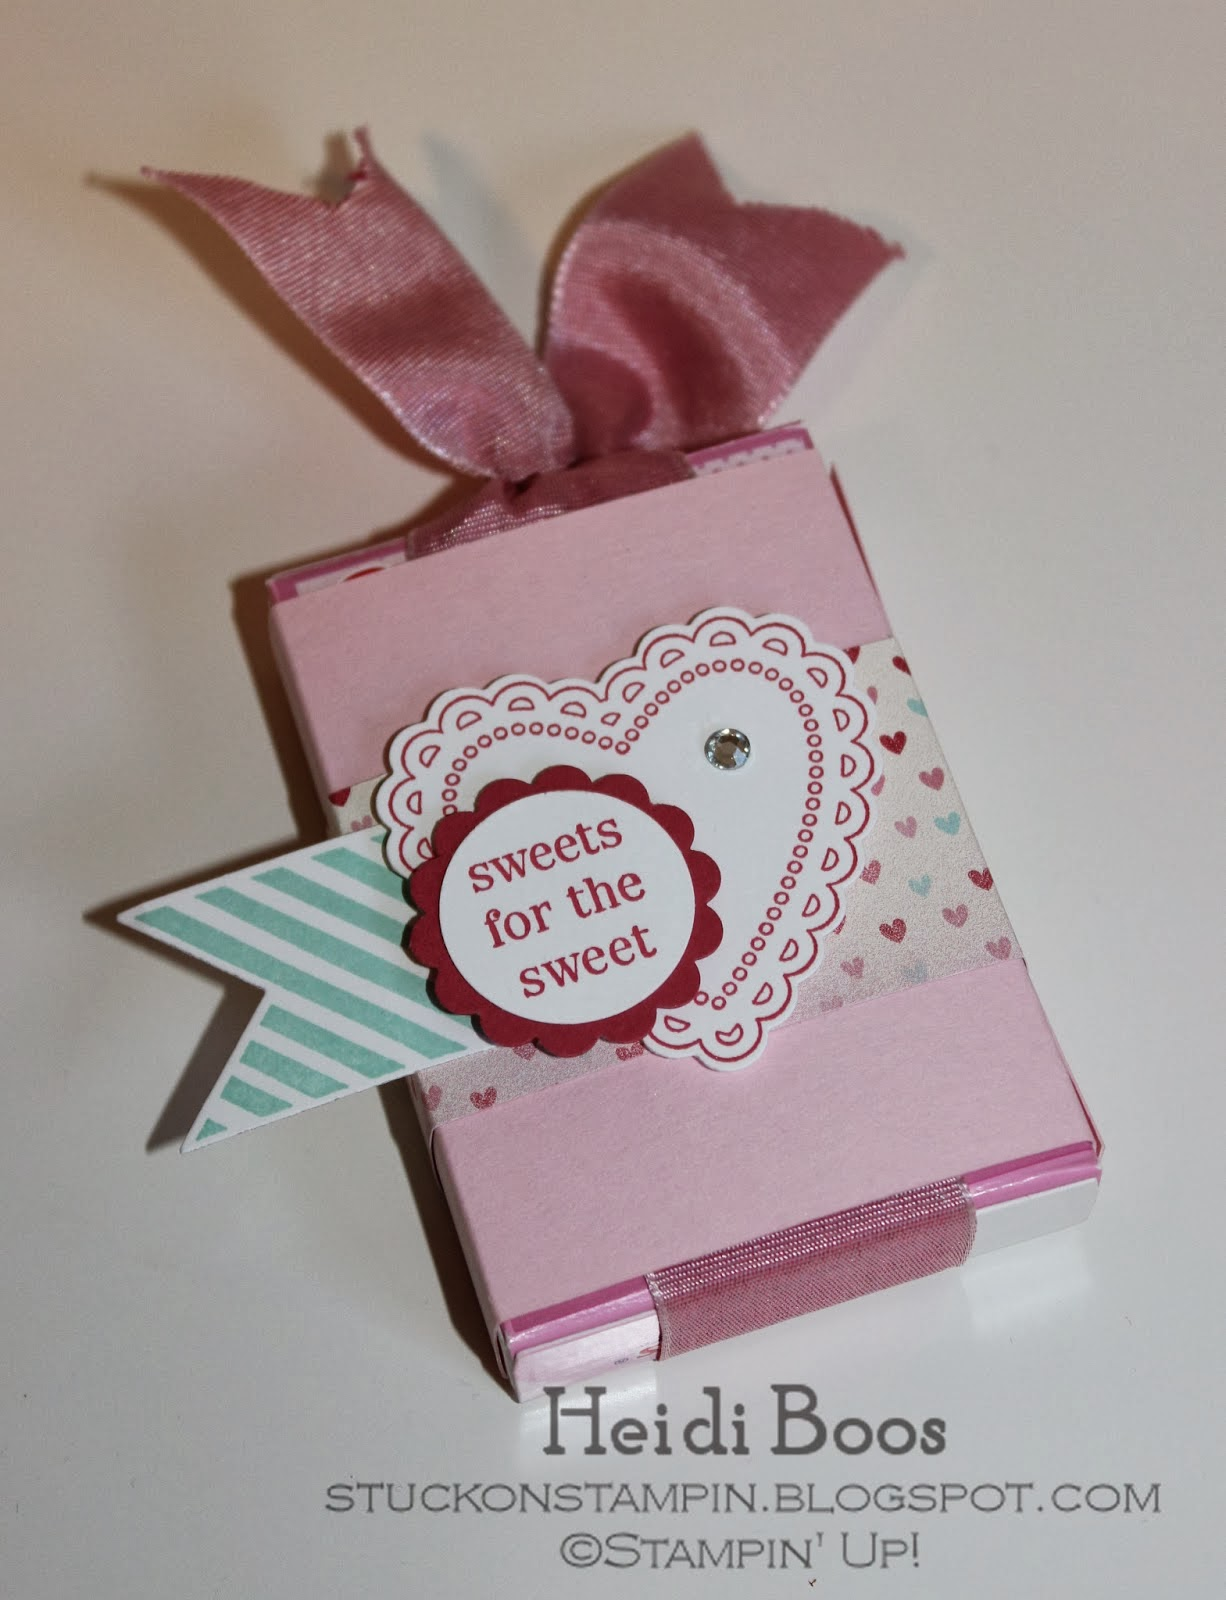 http://stuckonstampin.blogspot.com/2013/01/pull-up-sweethearts-candy-box-mini.html